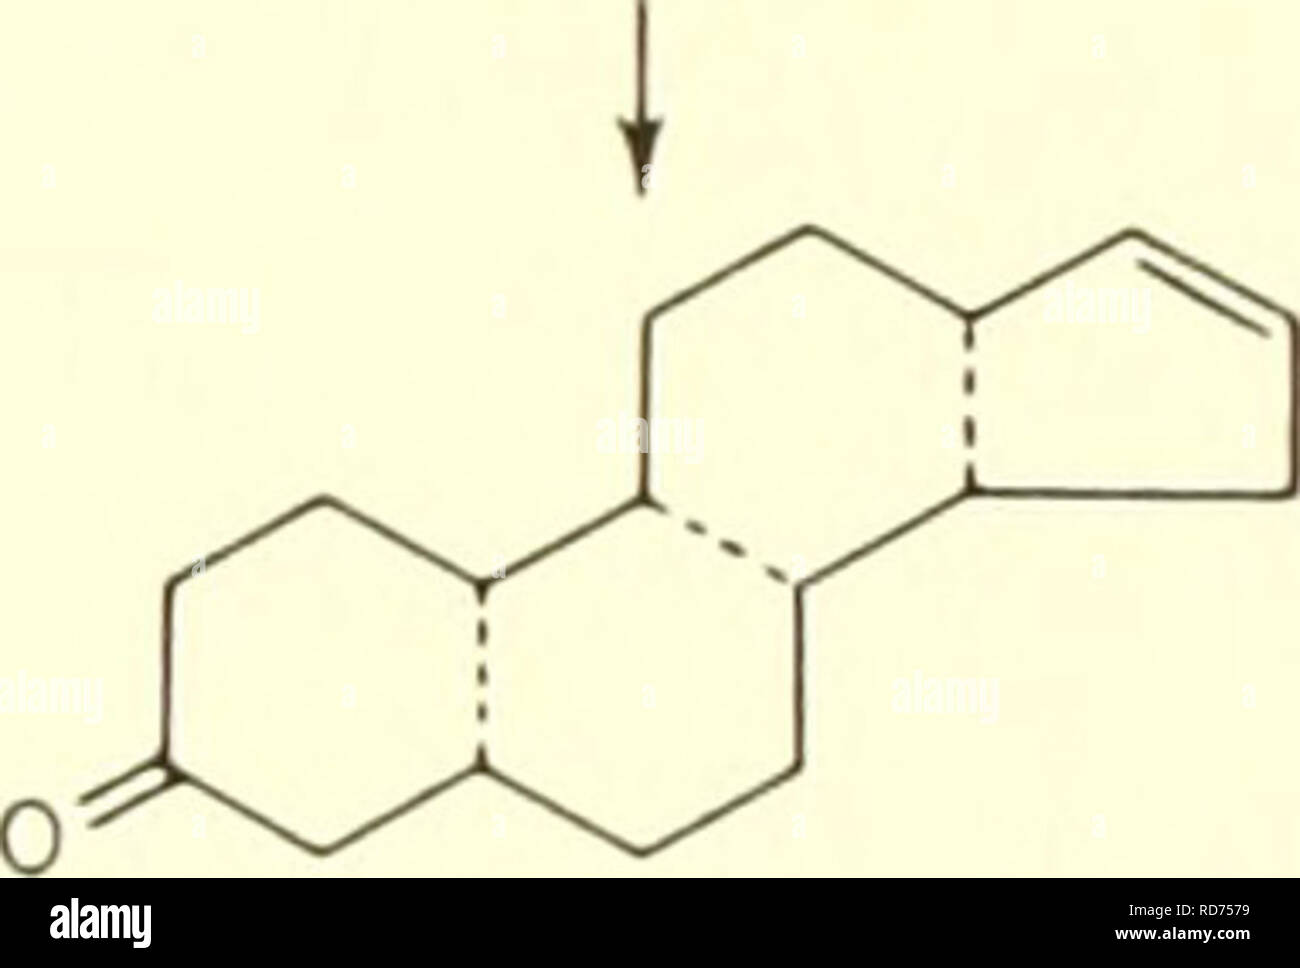 mention three applications of coordination compounds